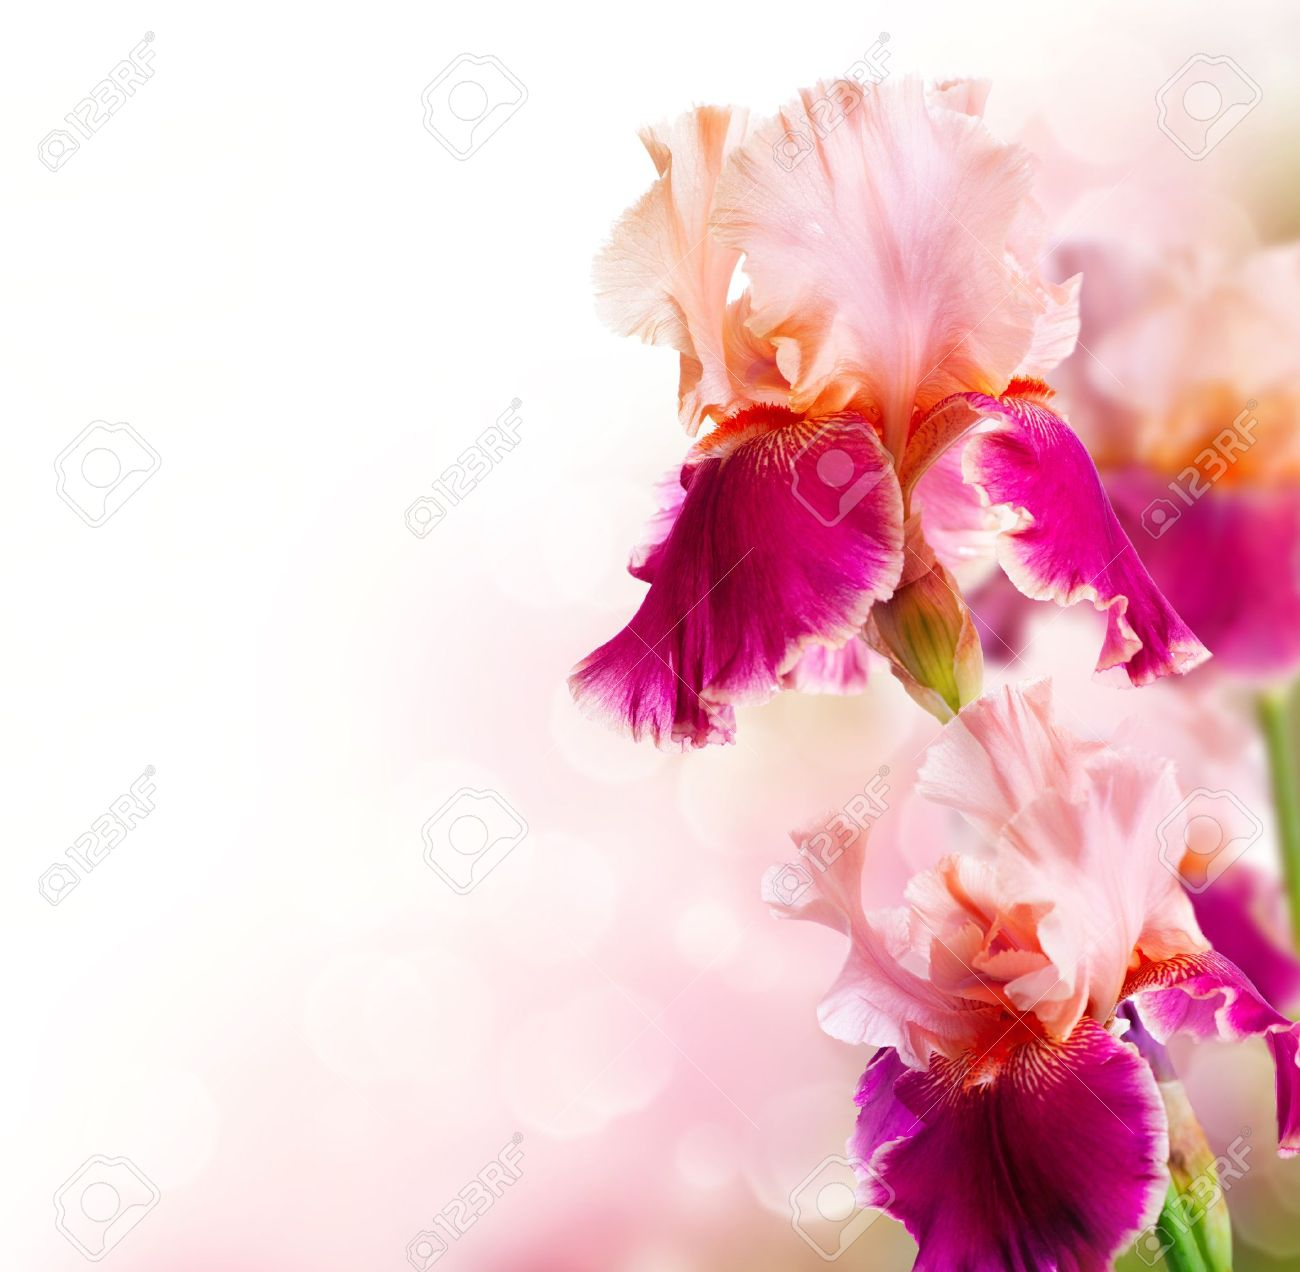 Iris flowers art design beautiful flower stock photo picture and iris flowers art design beautiful flower stock photo 20783996 izmirmasajfo